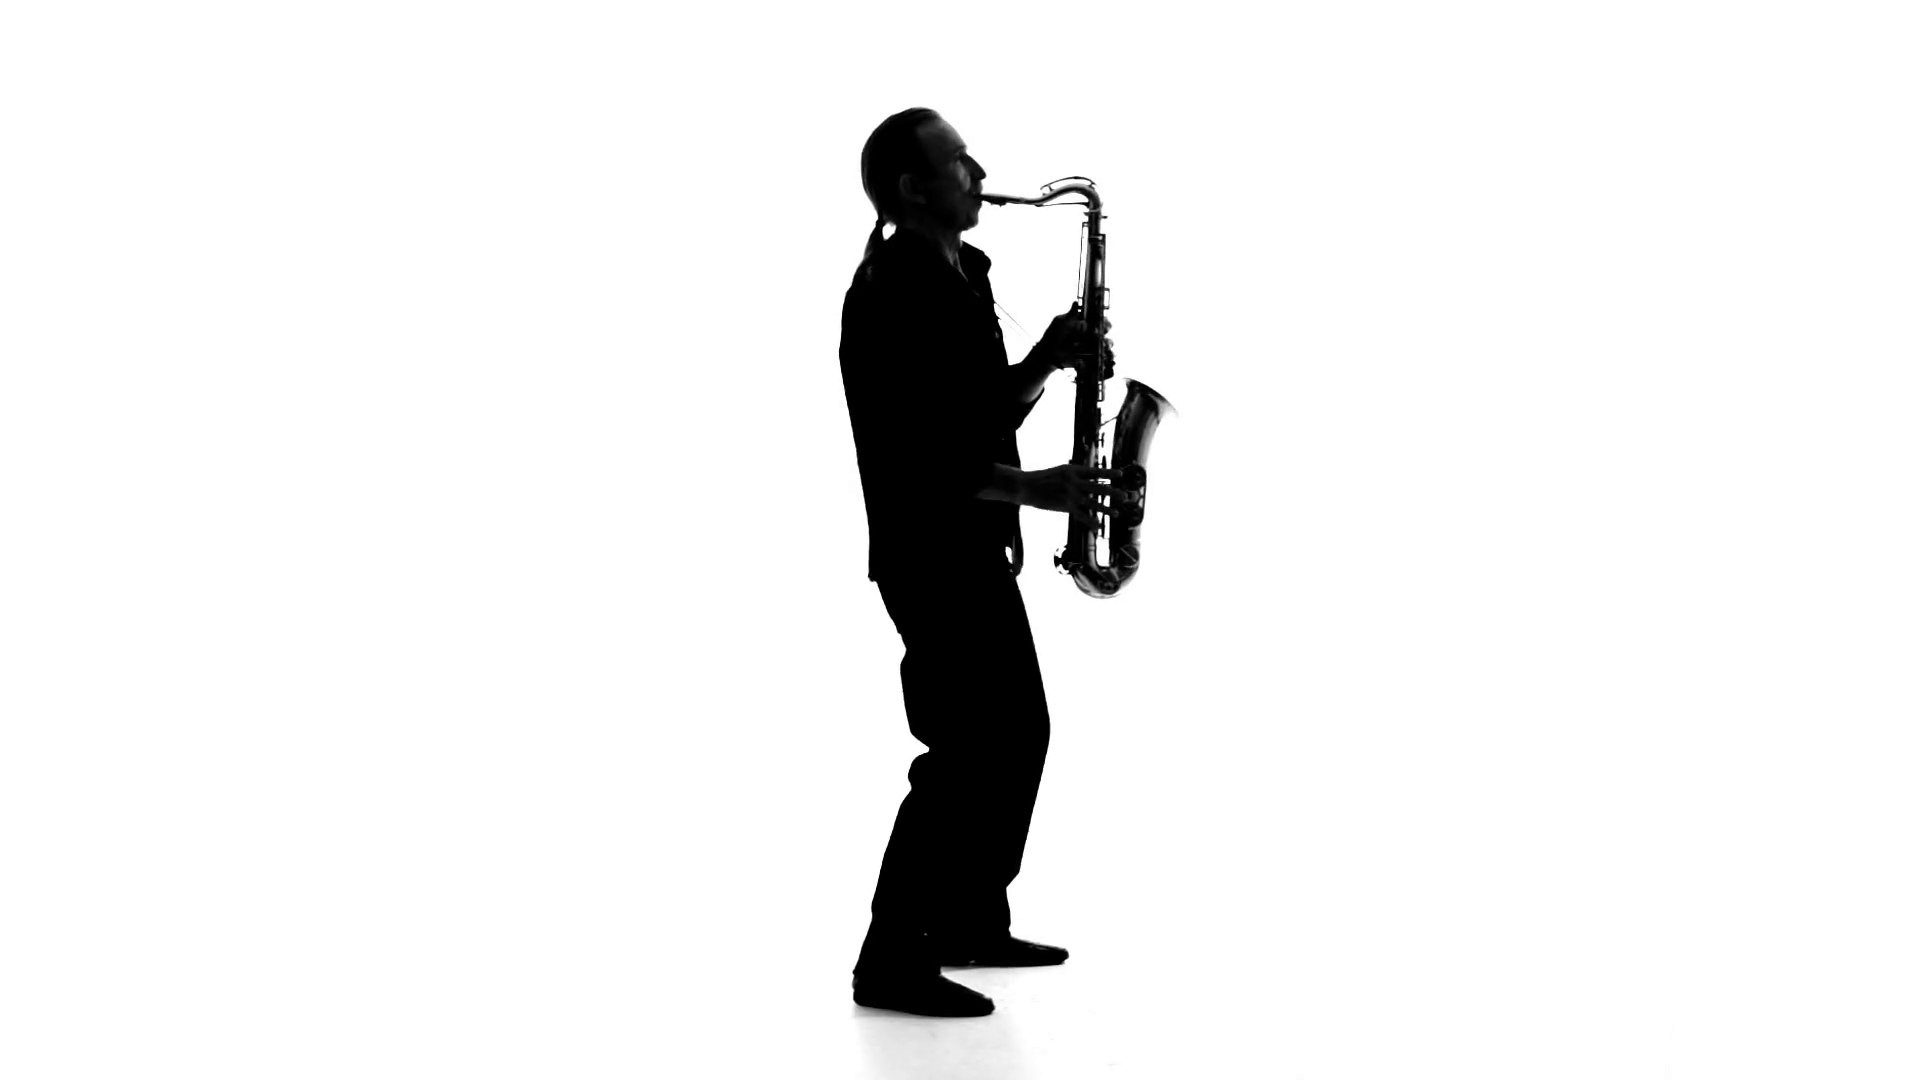 1920x1080 Silhouette Of A Musician Who Plays The Saxophone On A White